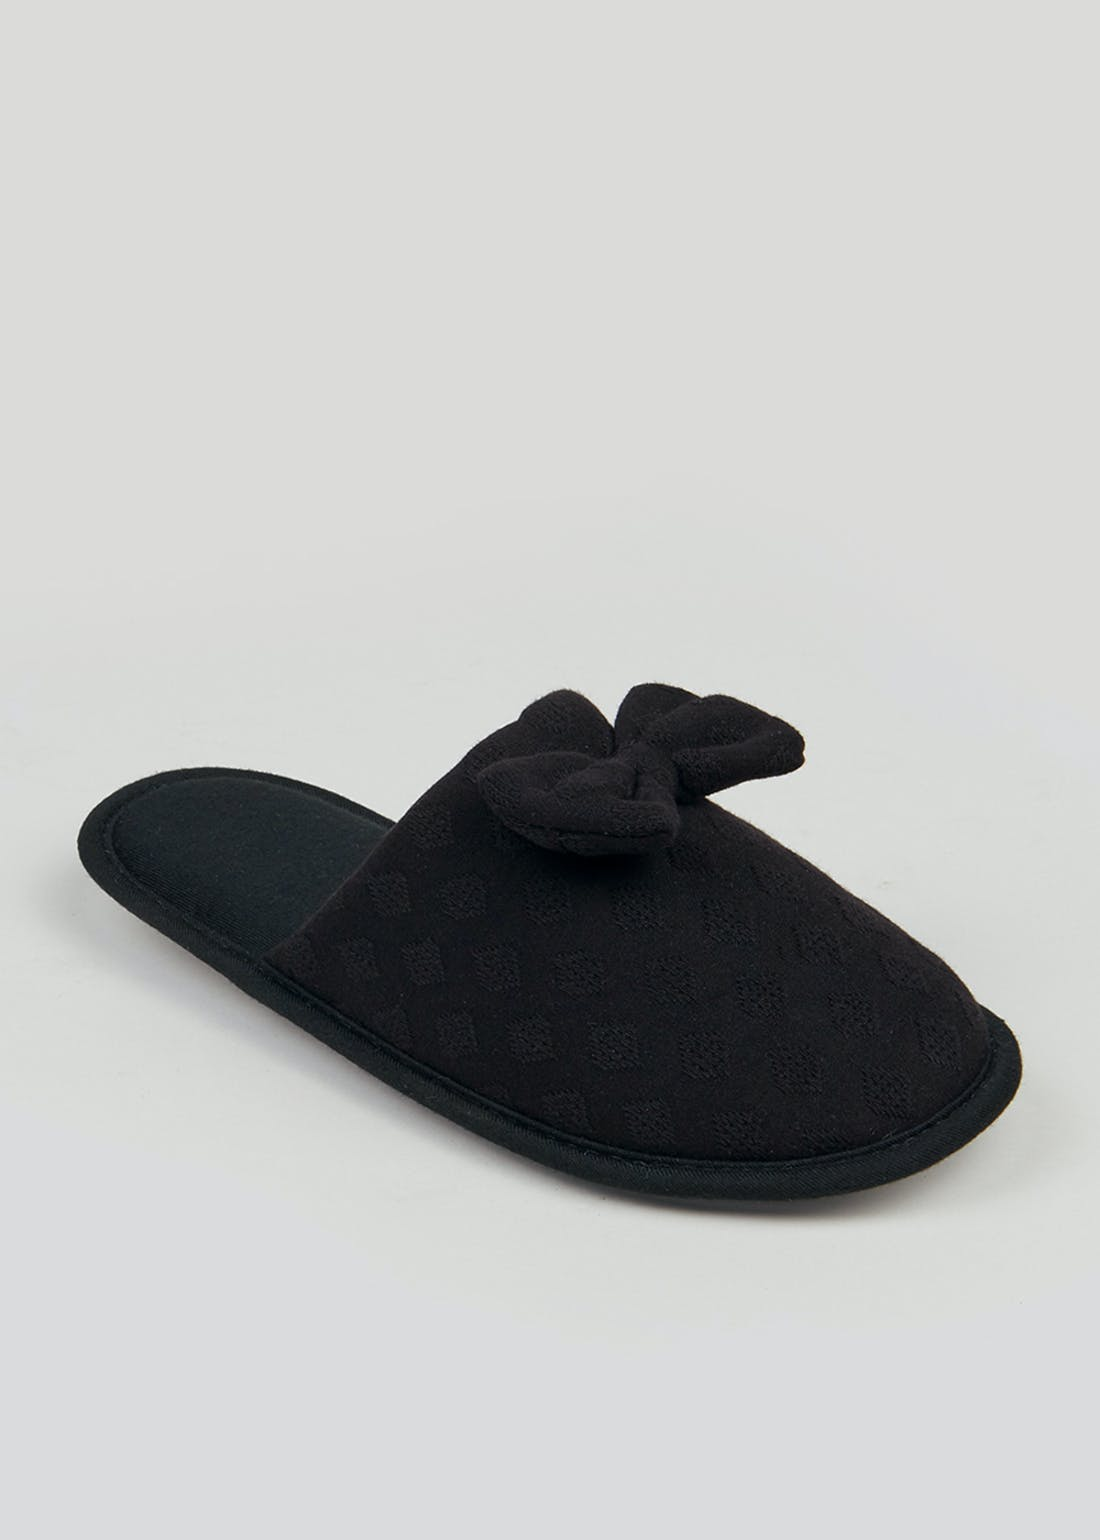 Black Bow Spotted Mule Slippers